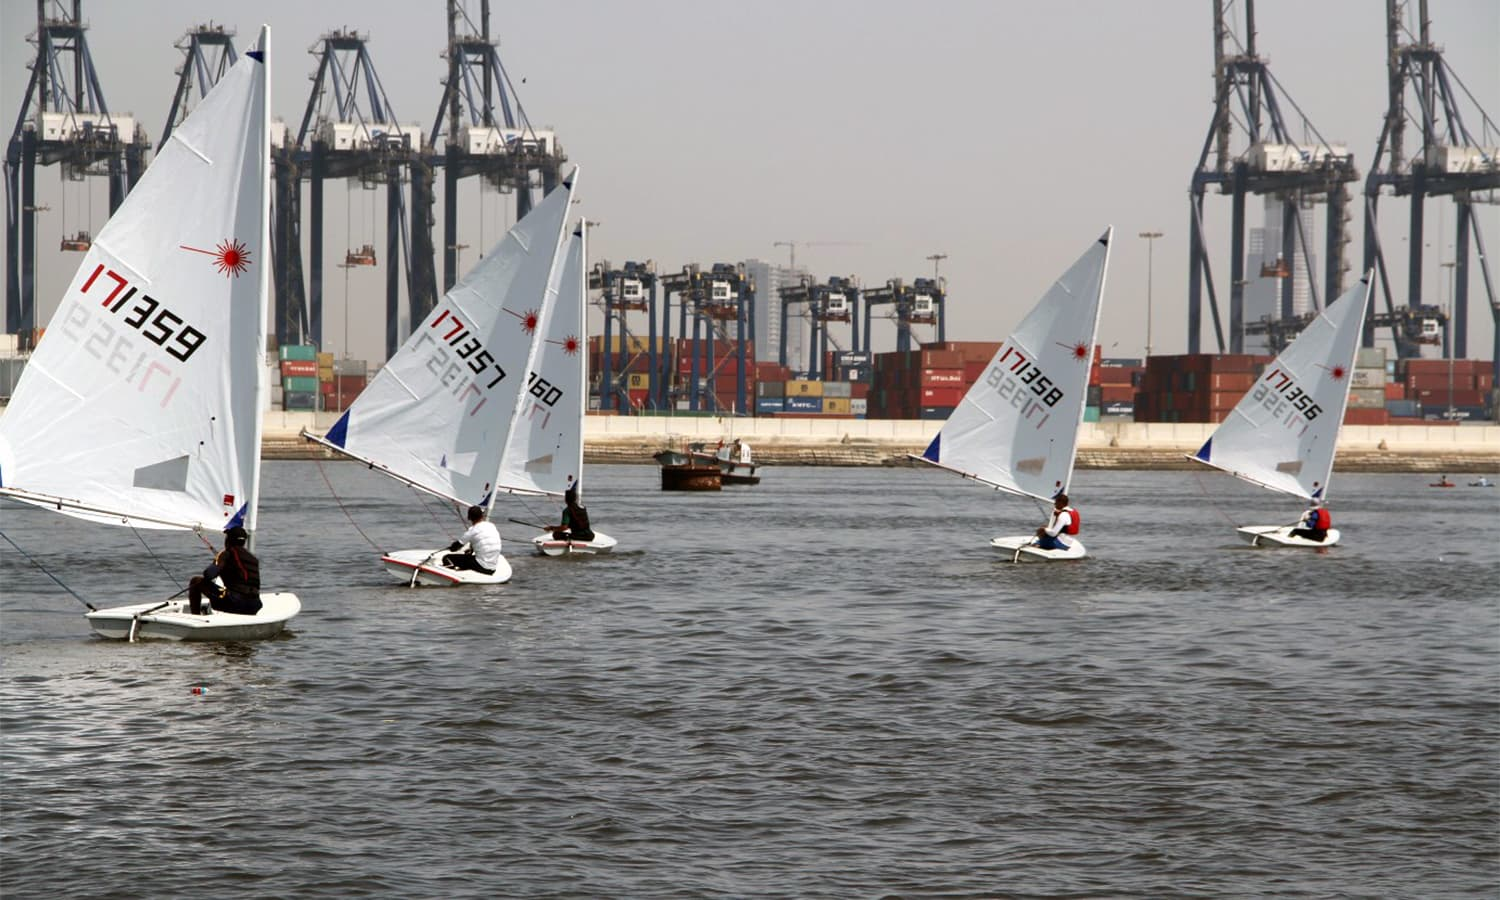 Cadets of Pakistan and other participating countries compete in the sailing race held in Karachi Harbour. —Navy PR